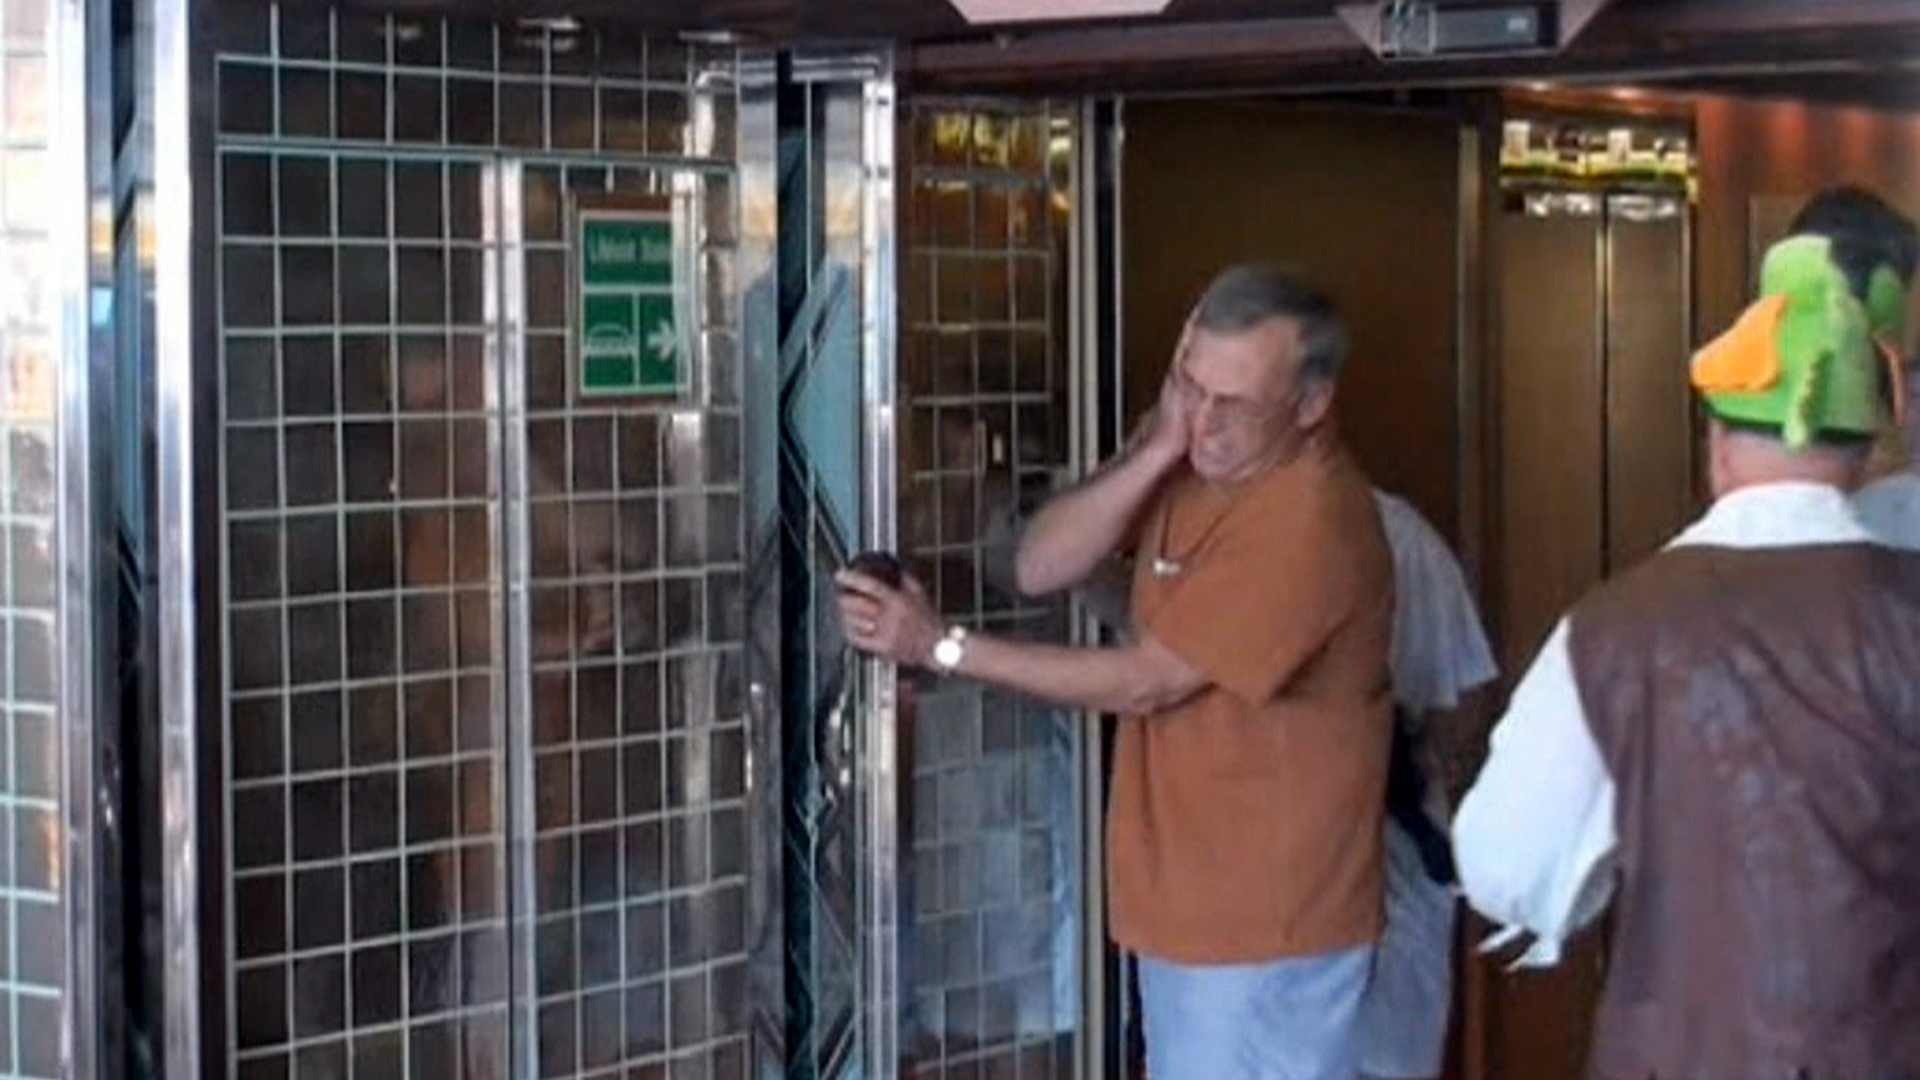 & Man hit in head by automatic door on cruise ship awarded $21 million